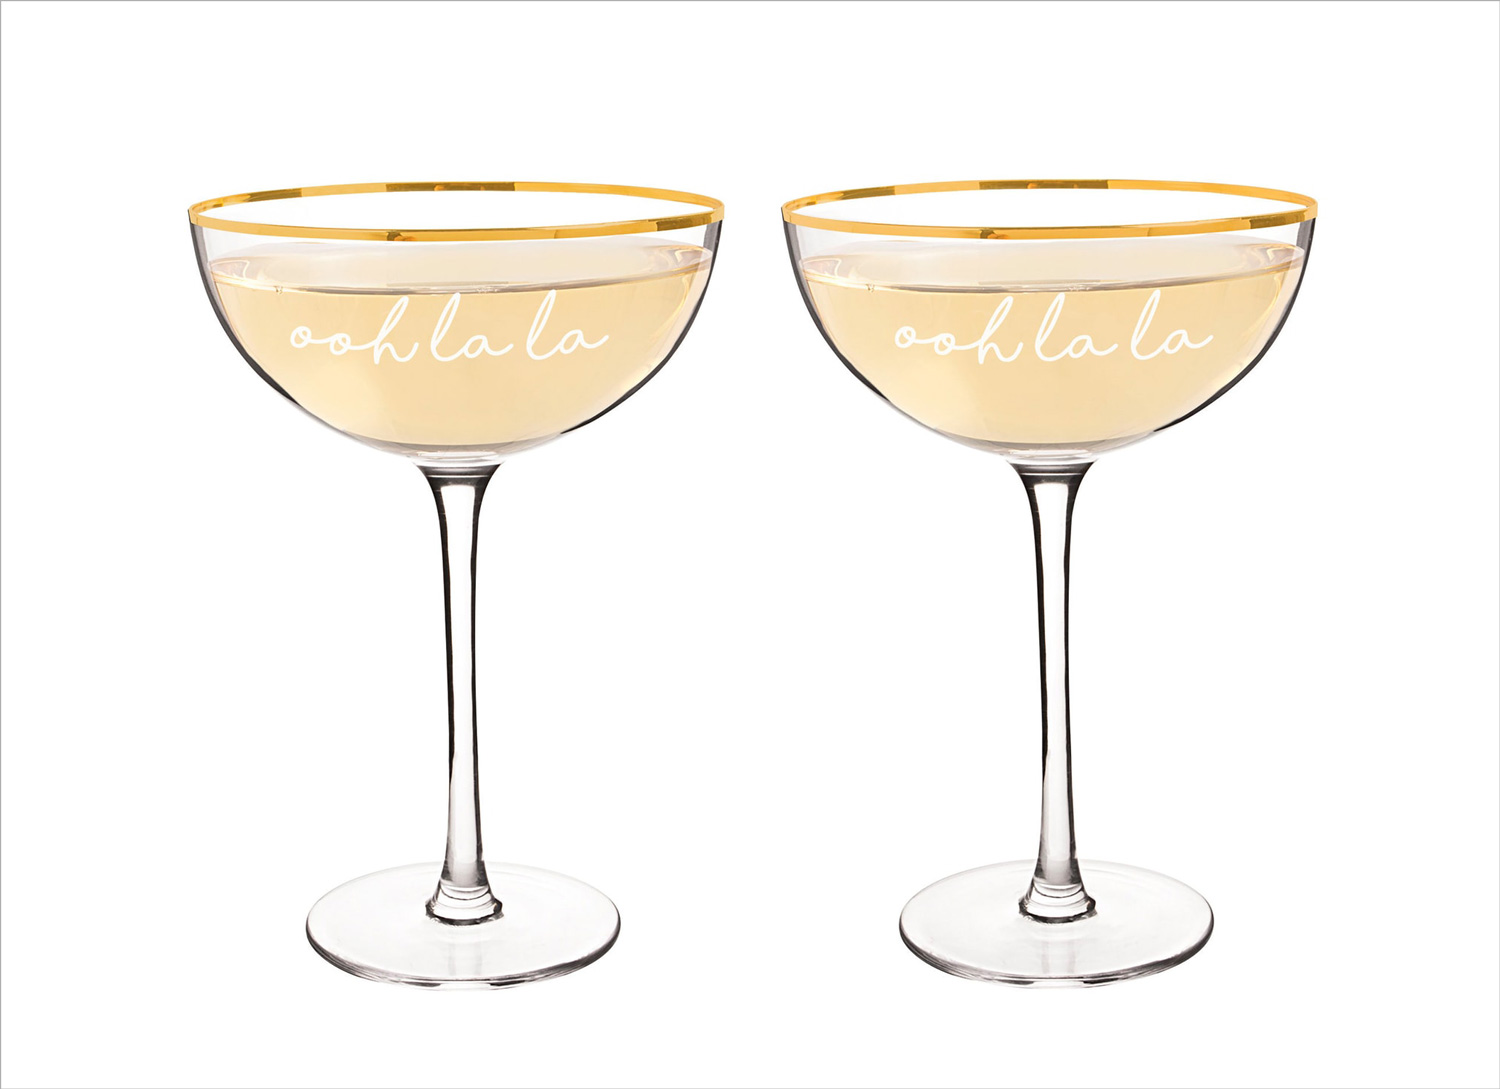 Nordstrom anniversary sale ooh la la champagne coupe glasses cathy's concepts wedding gift ideas